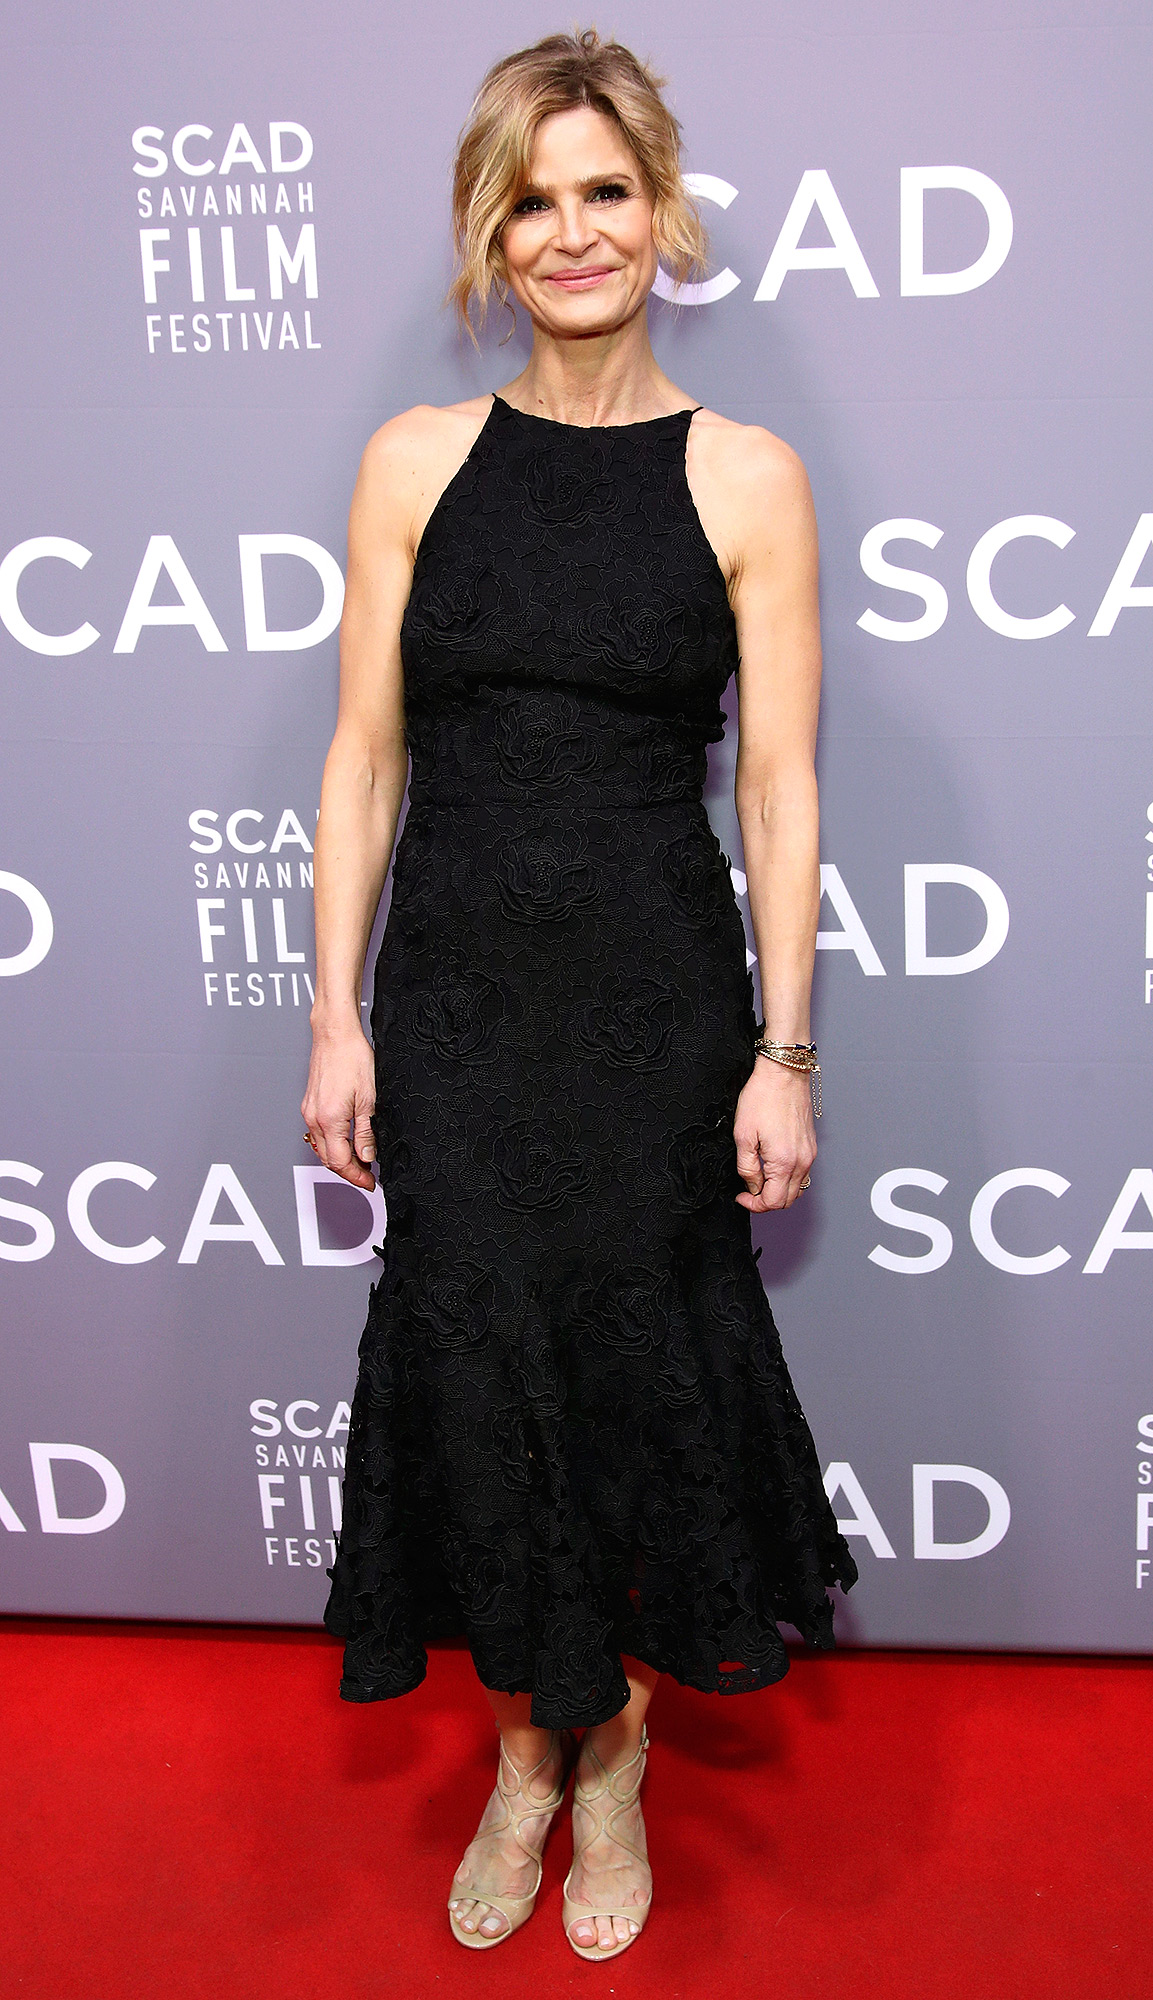 20th Anniversary SCAD Savannah Film Festival - Kyra Sedgewick Spotlight Award Presentation